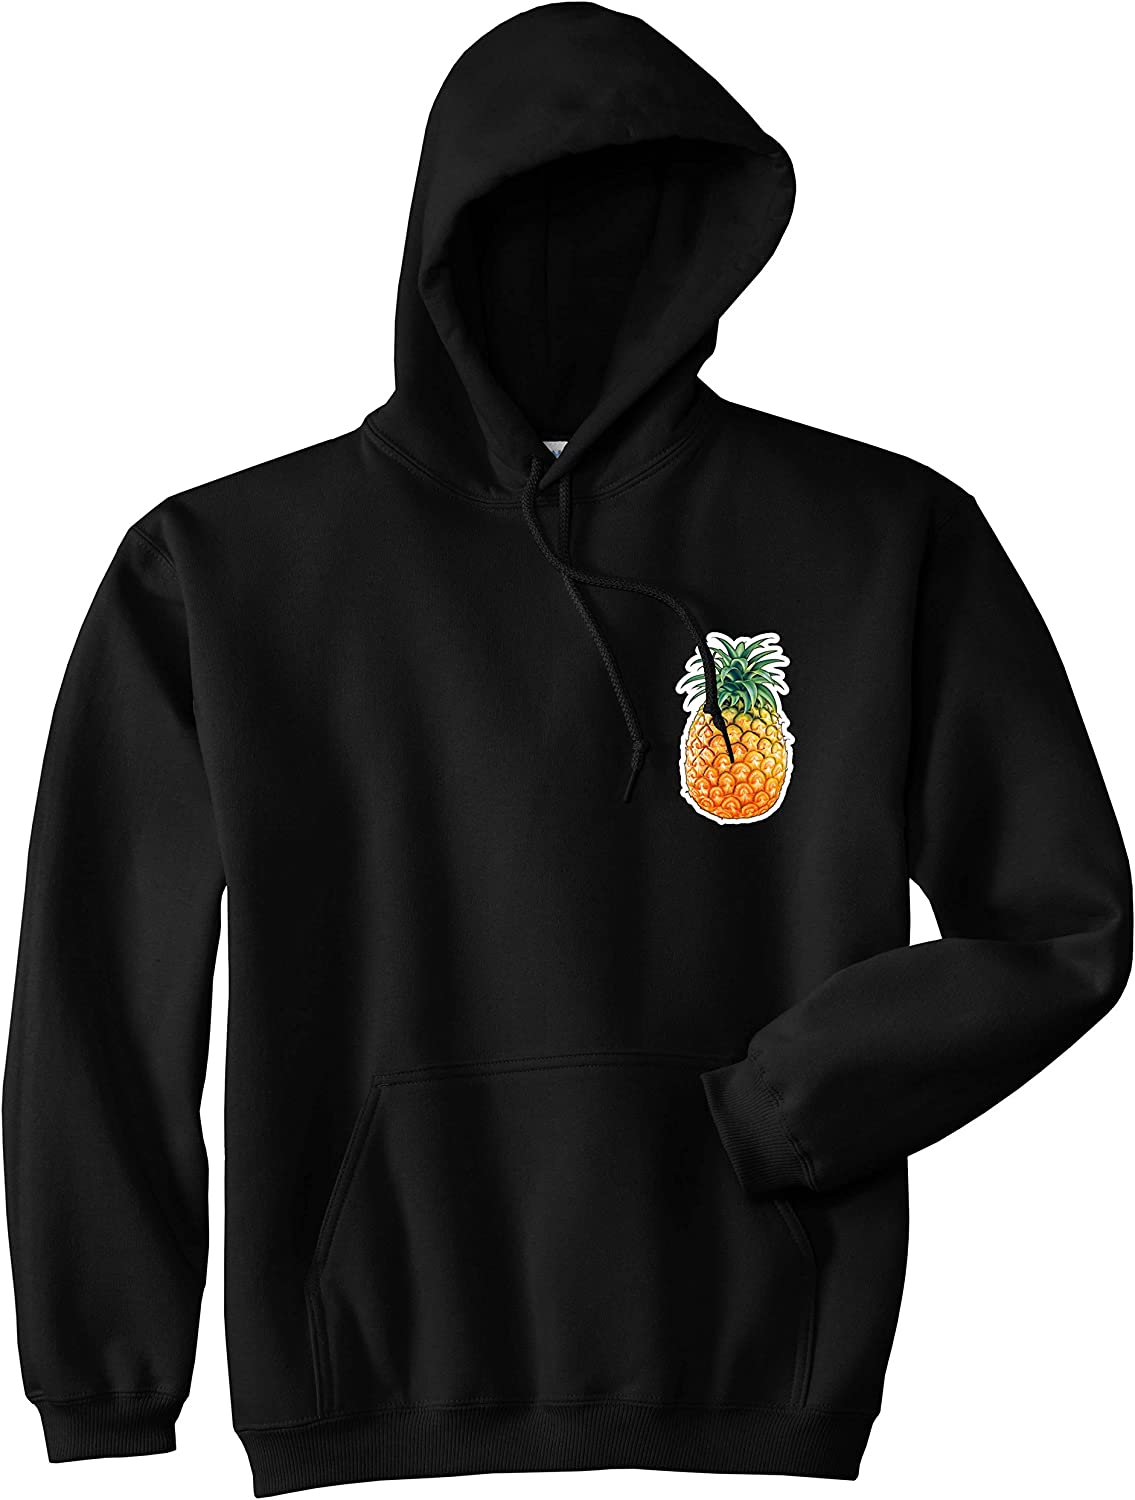 Mesa Mall low-pricing Kings Of NY Pineapple Chest Logo Hoodie Meme Emoji Mens Pullover